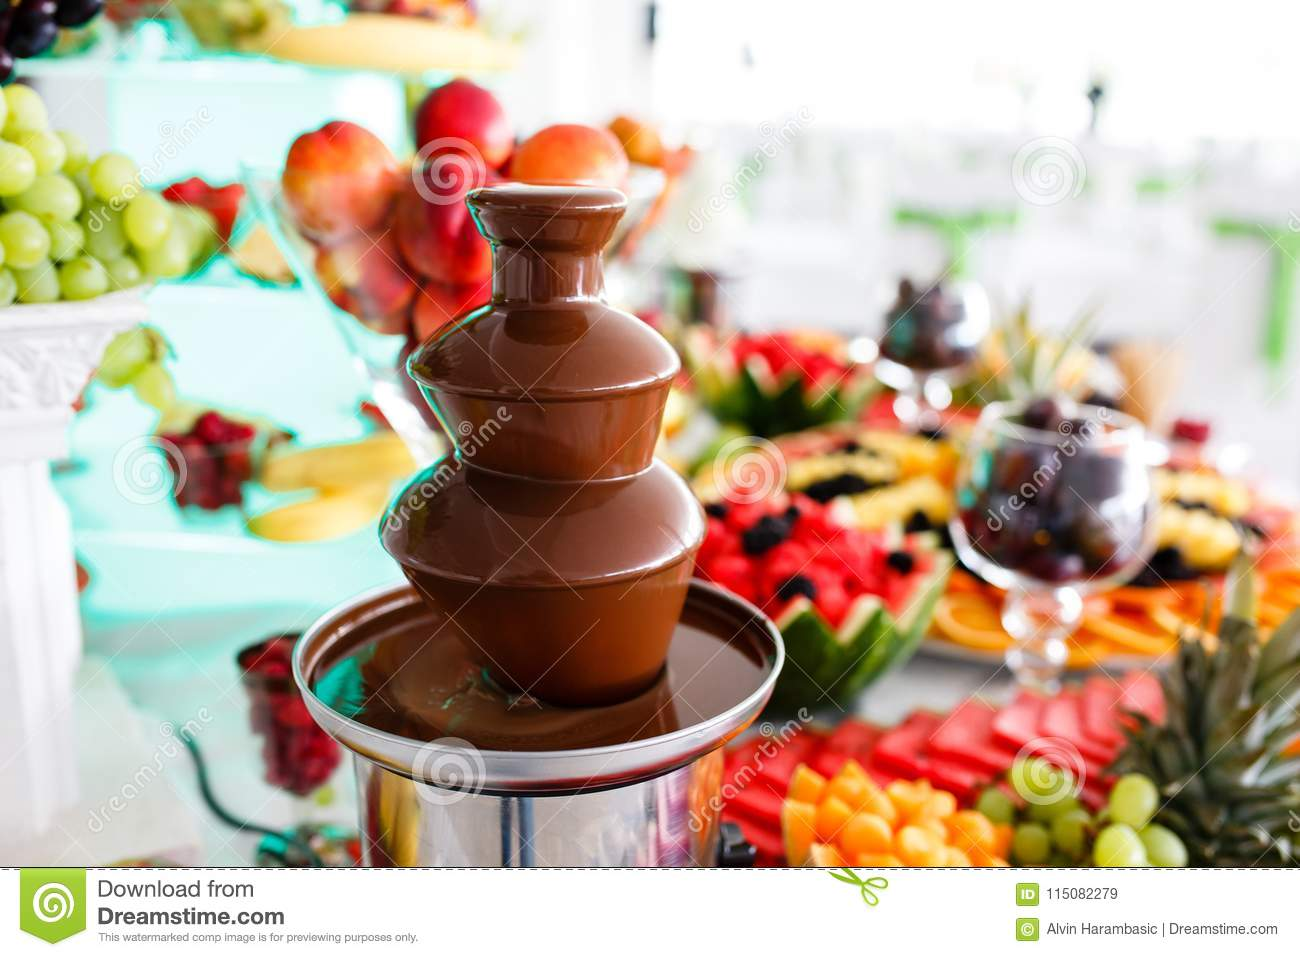 Chocolate Fountain And Fruits For Dessert At Wedding Table Stock